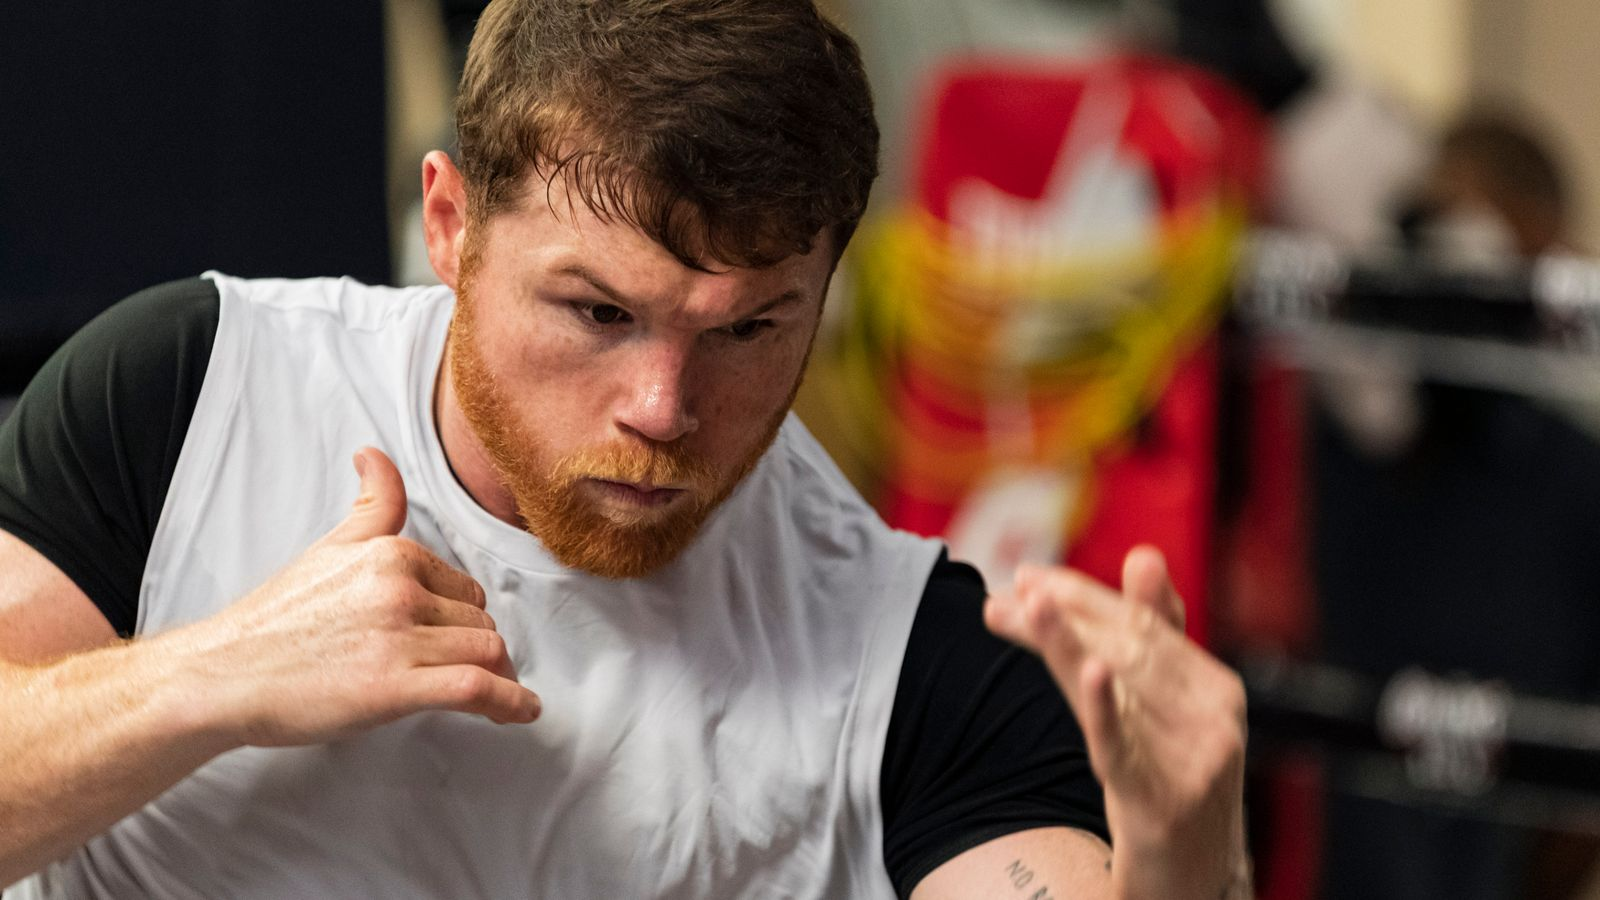 Saul 'Canelo' Alvarez on Caleb Plant before undisputed fight: 'It's the most animosity I've had with an opponent'